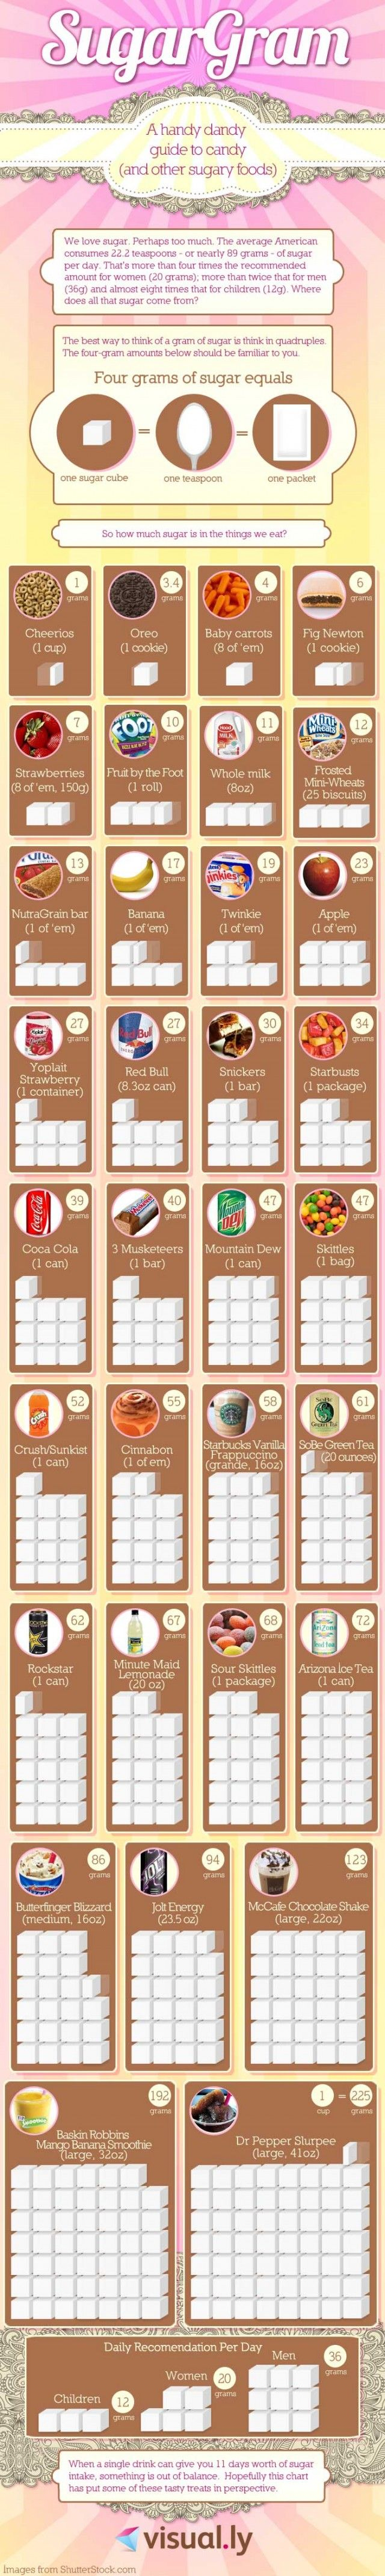 New Sugar Infographic - See how one drink can equal 11 days worth of sugar intake!